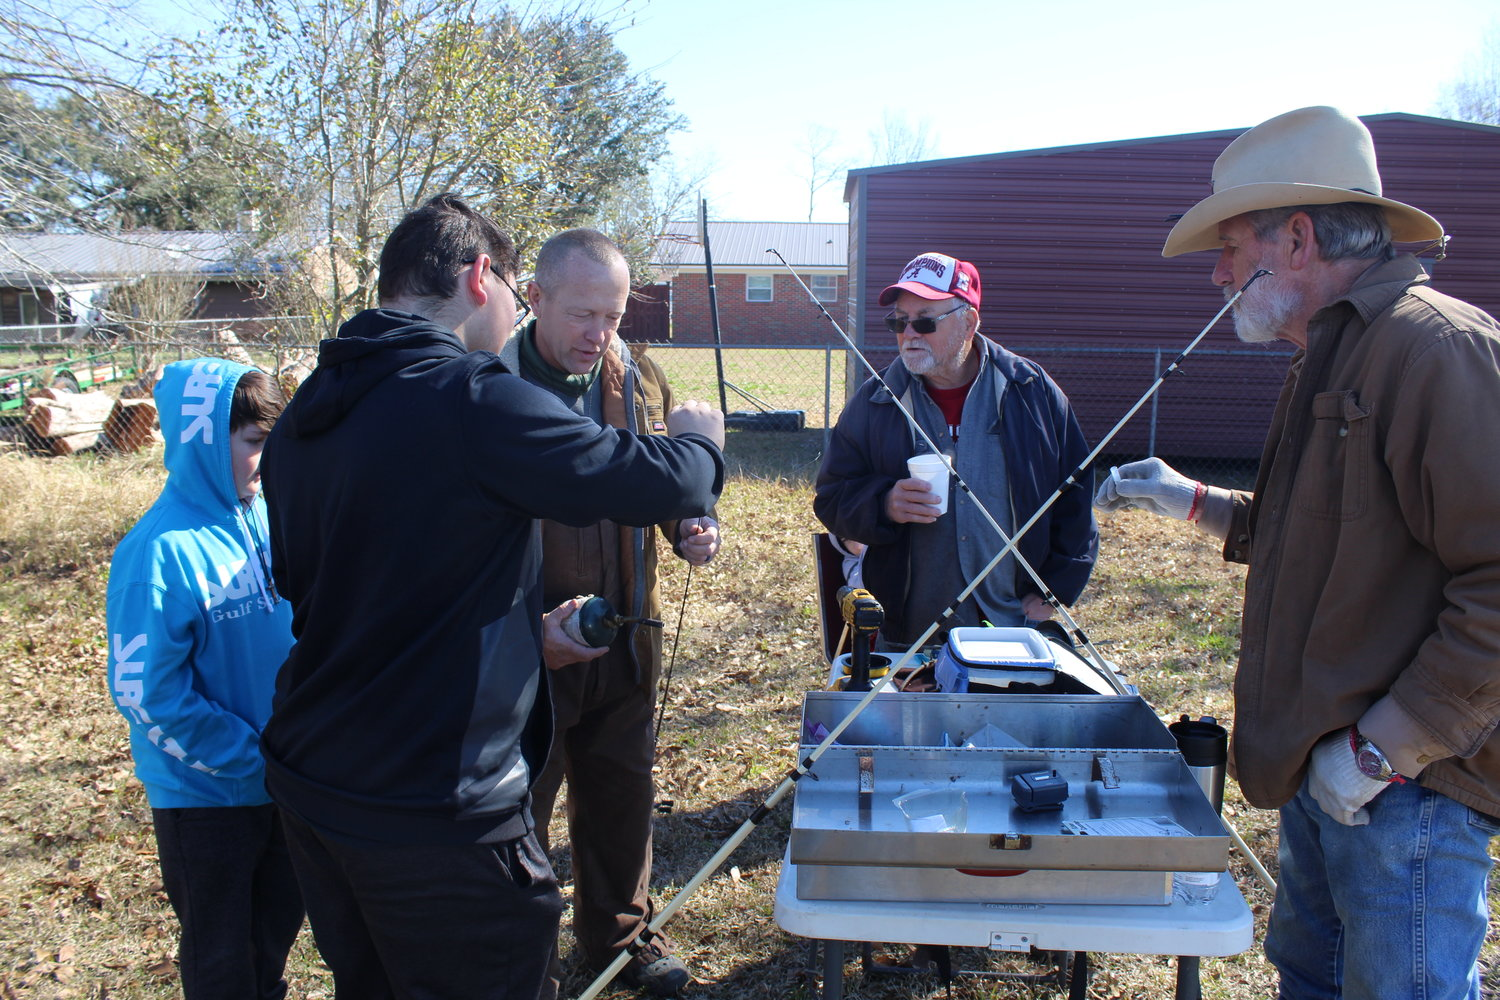 Program Director Clyde Myrick teaches the proper way to load and untangle fishing line during the Kids Outdoor Zone program held Feb. 20 at FBC-Robertsdale.